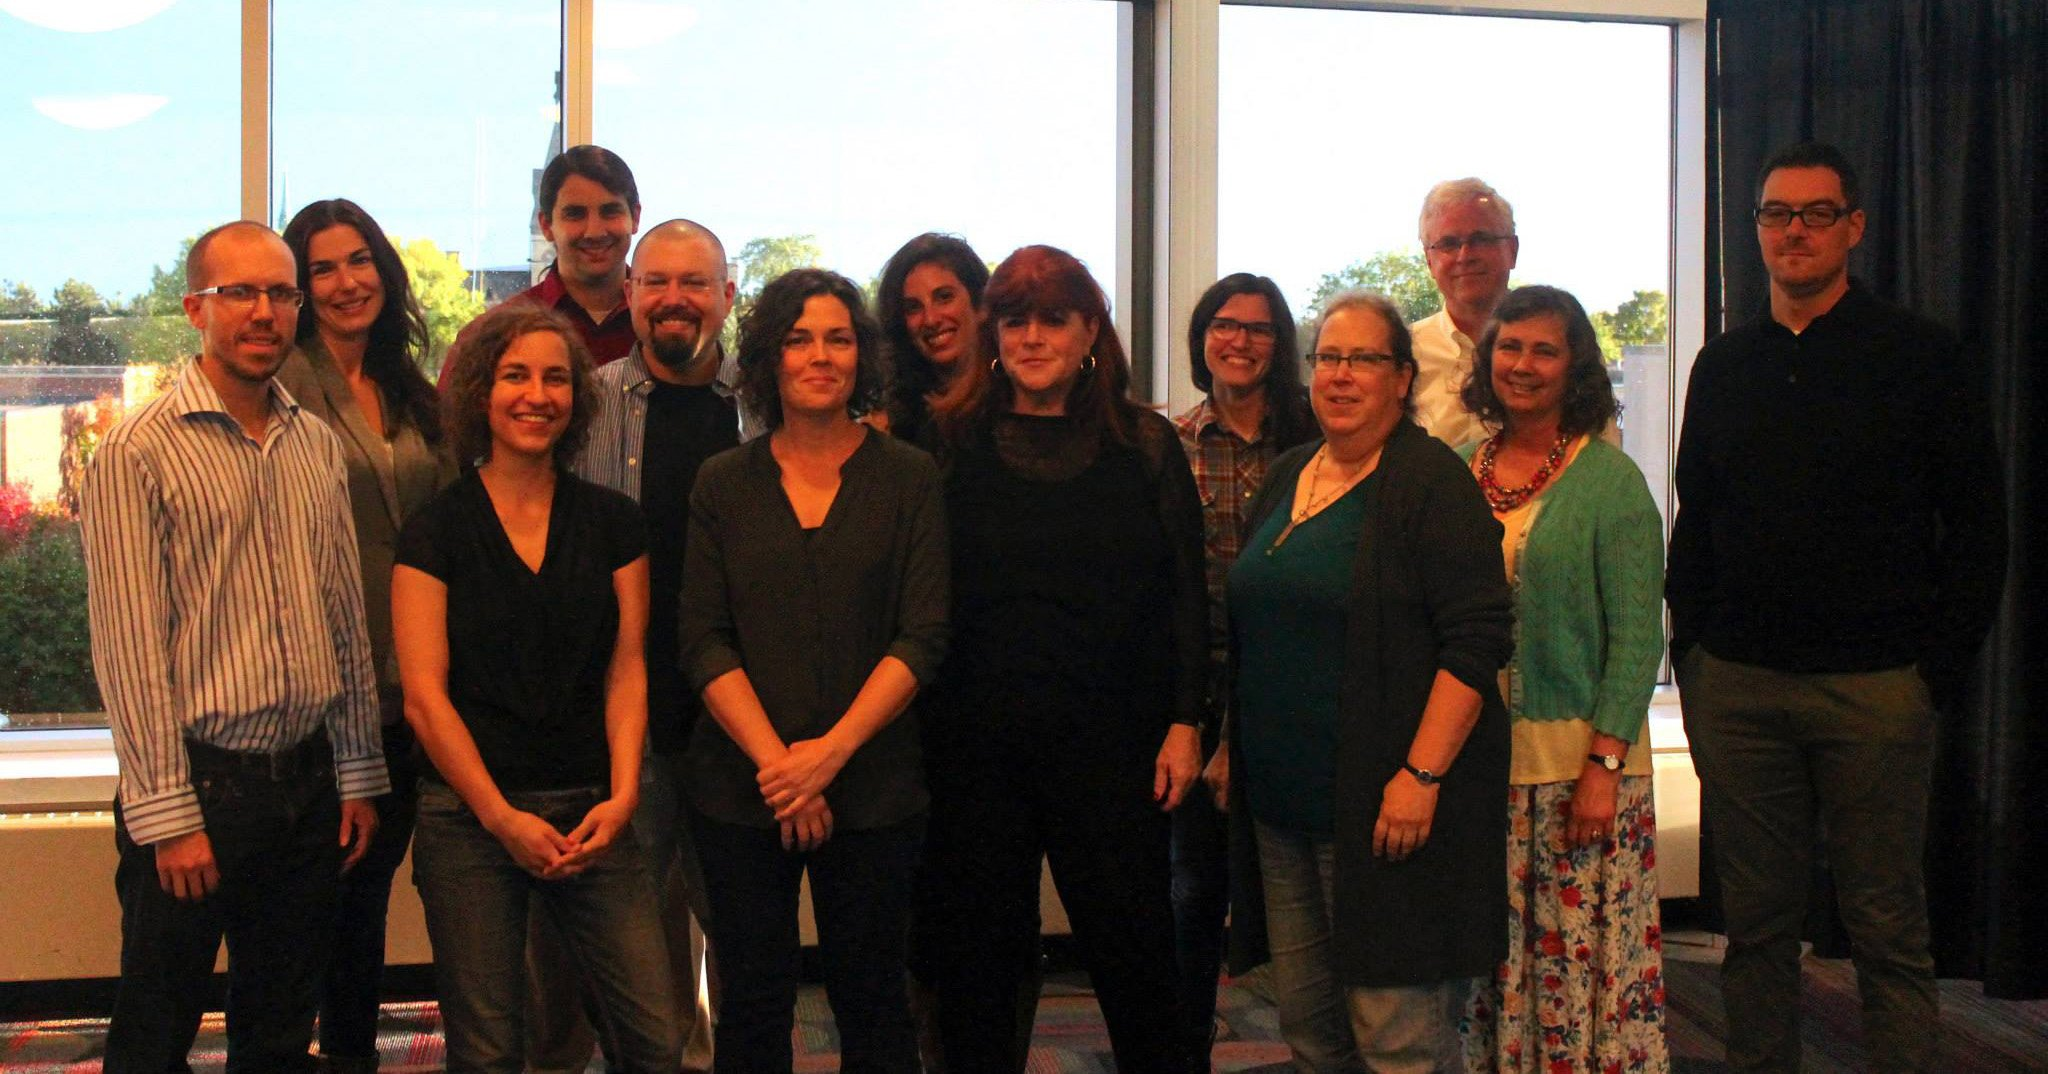 Pictured from left to right are volunteers with the Minnesota Prison Writing Workshop at a reading at Hamline University on September 20, 2014: Dain Ingebretson, Kathryn Savage, Anika Eide, Peter Pearson, Nico Taranovsky, Jennifer Bowen Hicks, Elizabeth Tannen, Deborah Appleman, Mary Stein, Nell Ubbelohde, Scott Carpenter, Wendy Brown-Baez, and Bill Breen. Photo by Henry Breen.